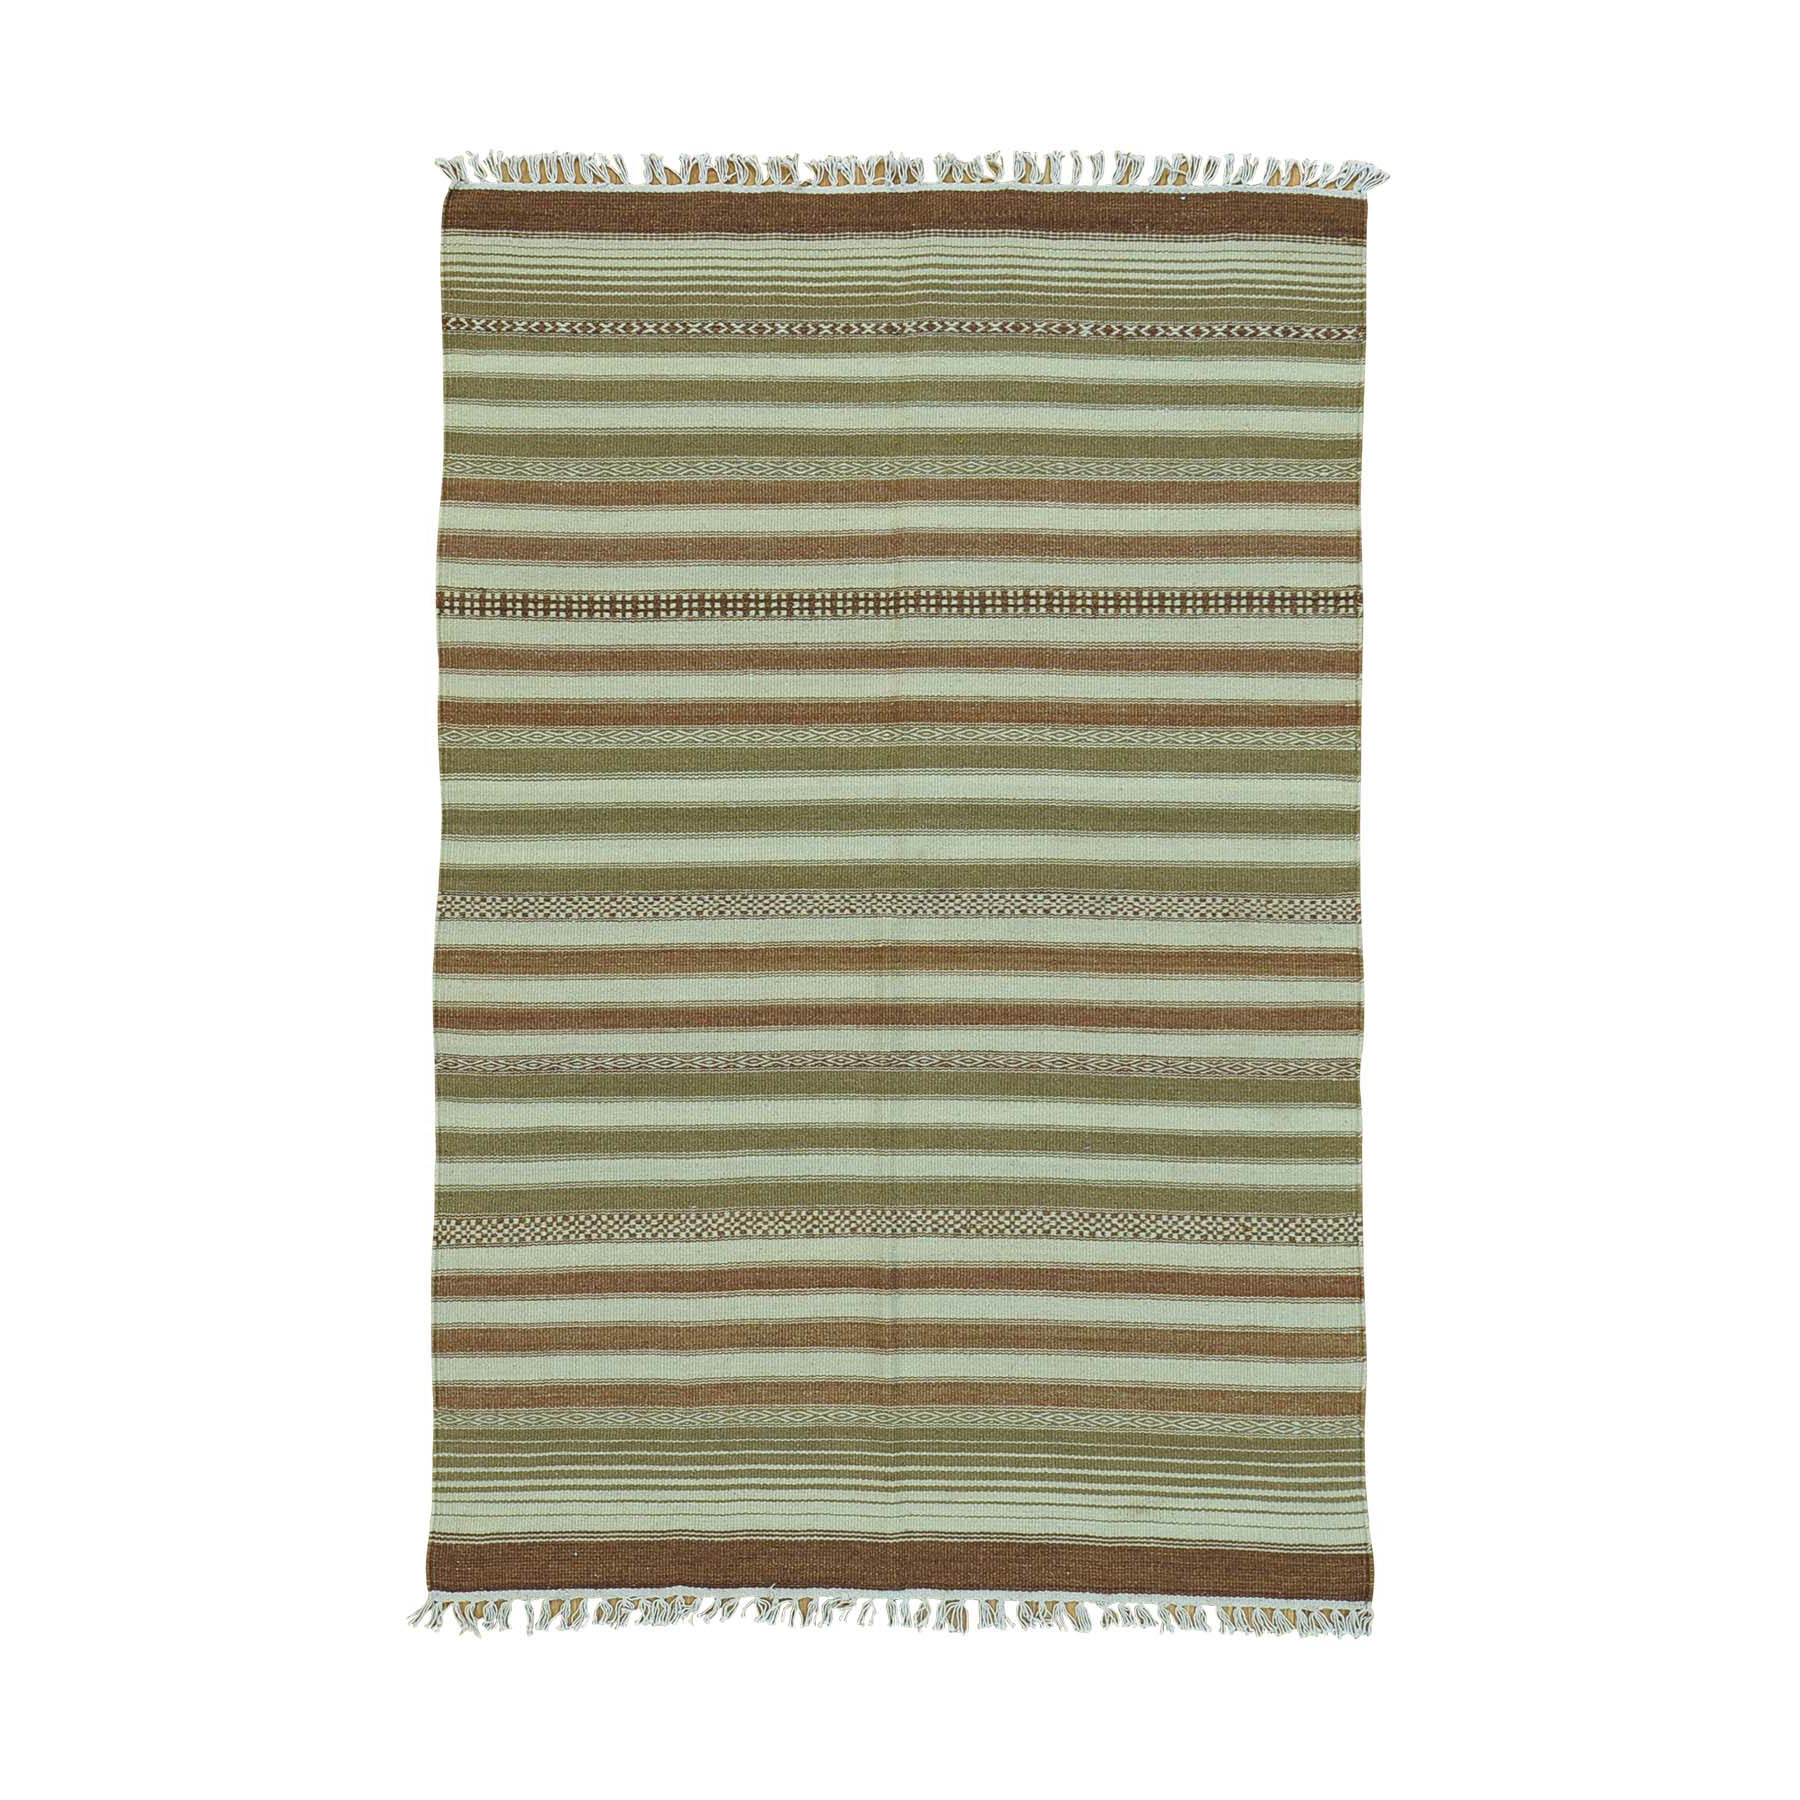 4'X6' Reversible Flat Weave Pure Wool Striped Durie Kilim Oriental Rug moac00ba